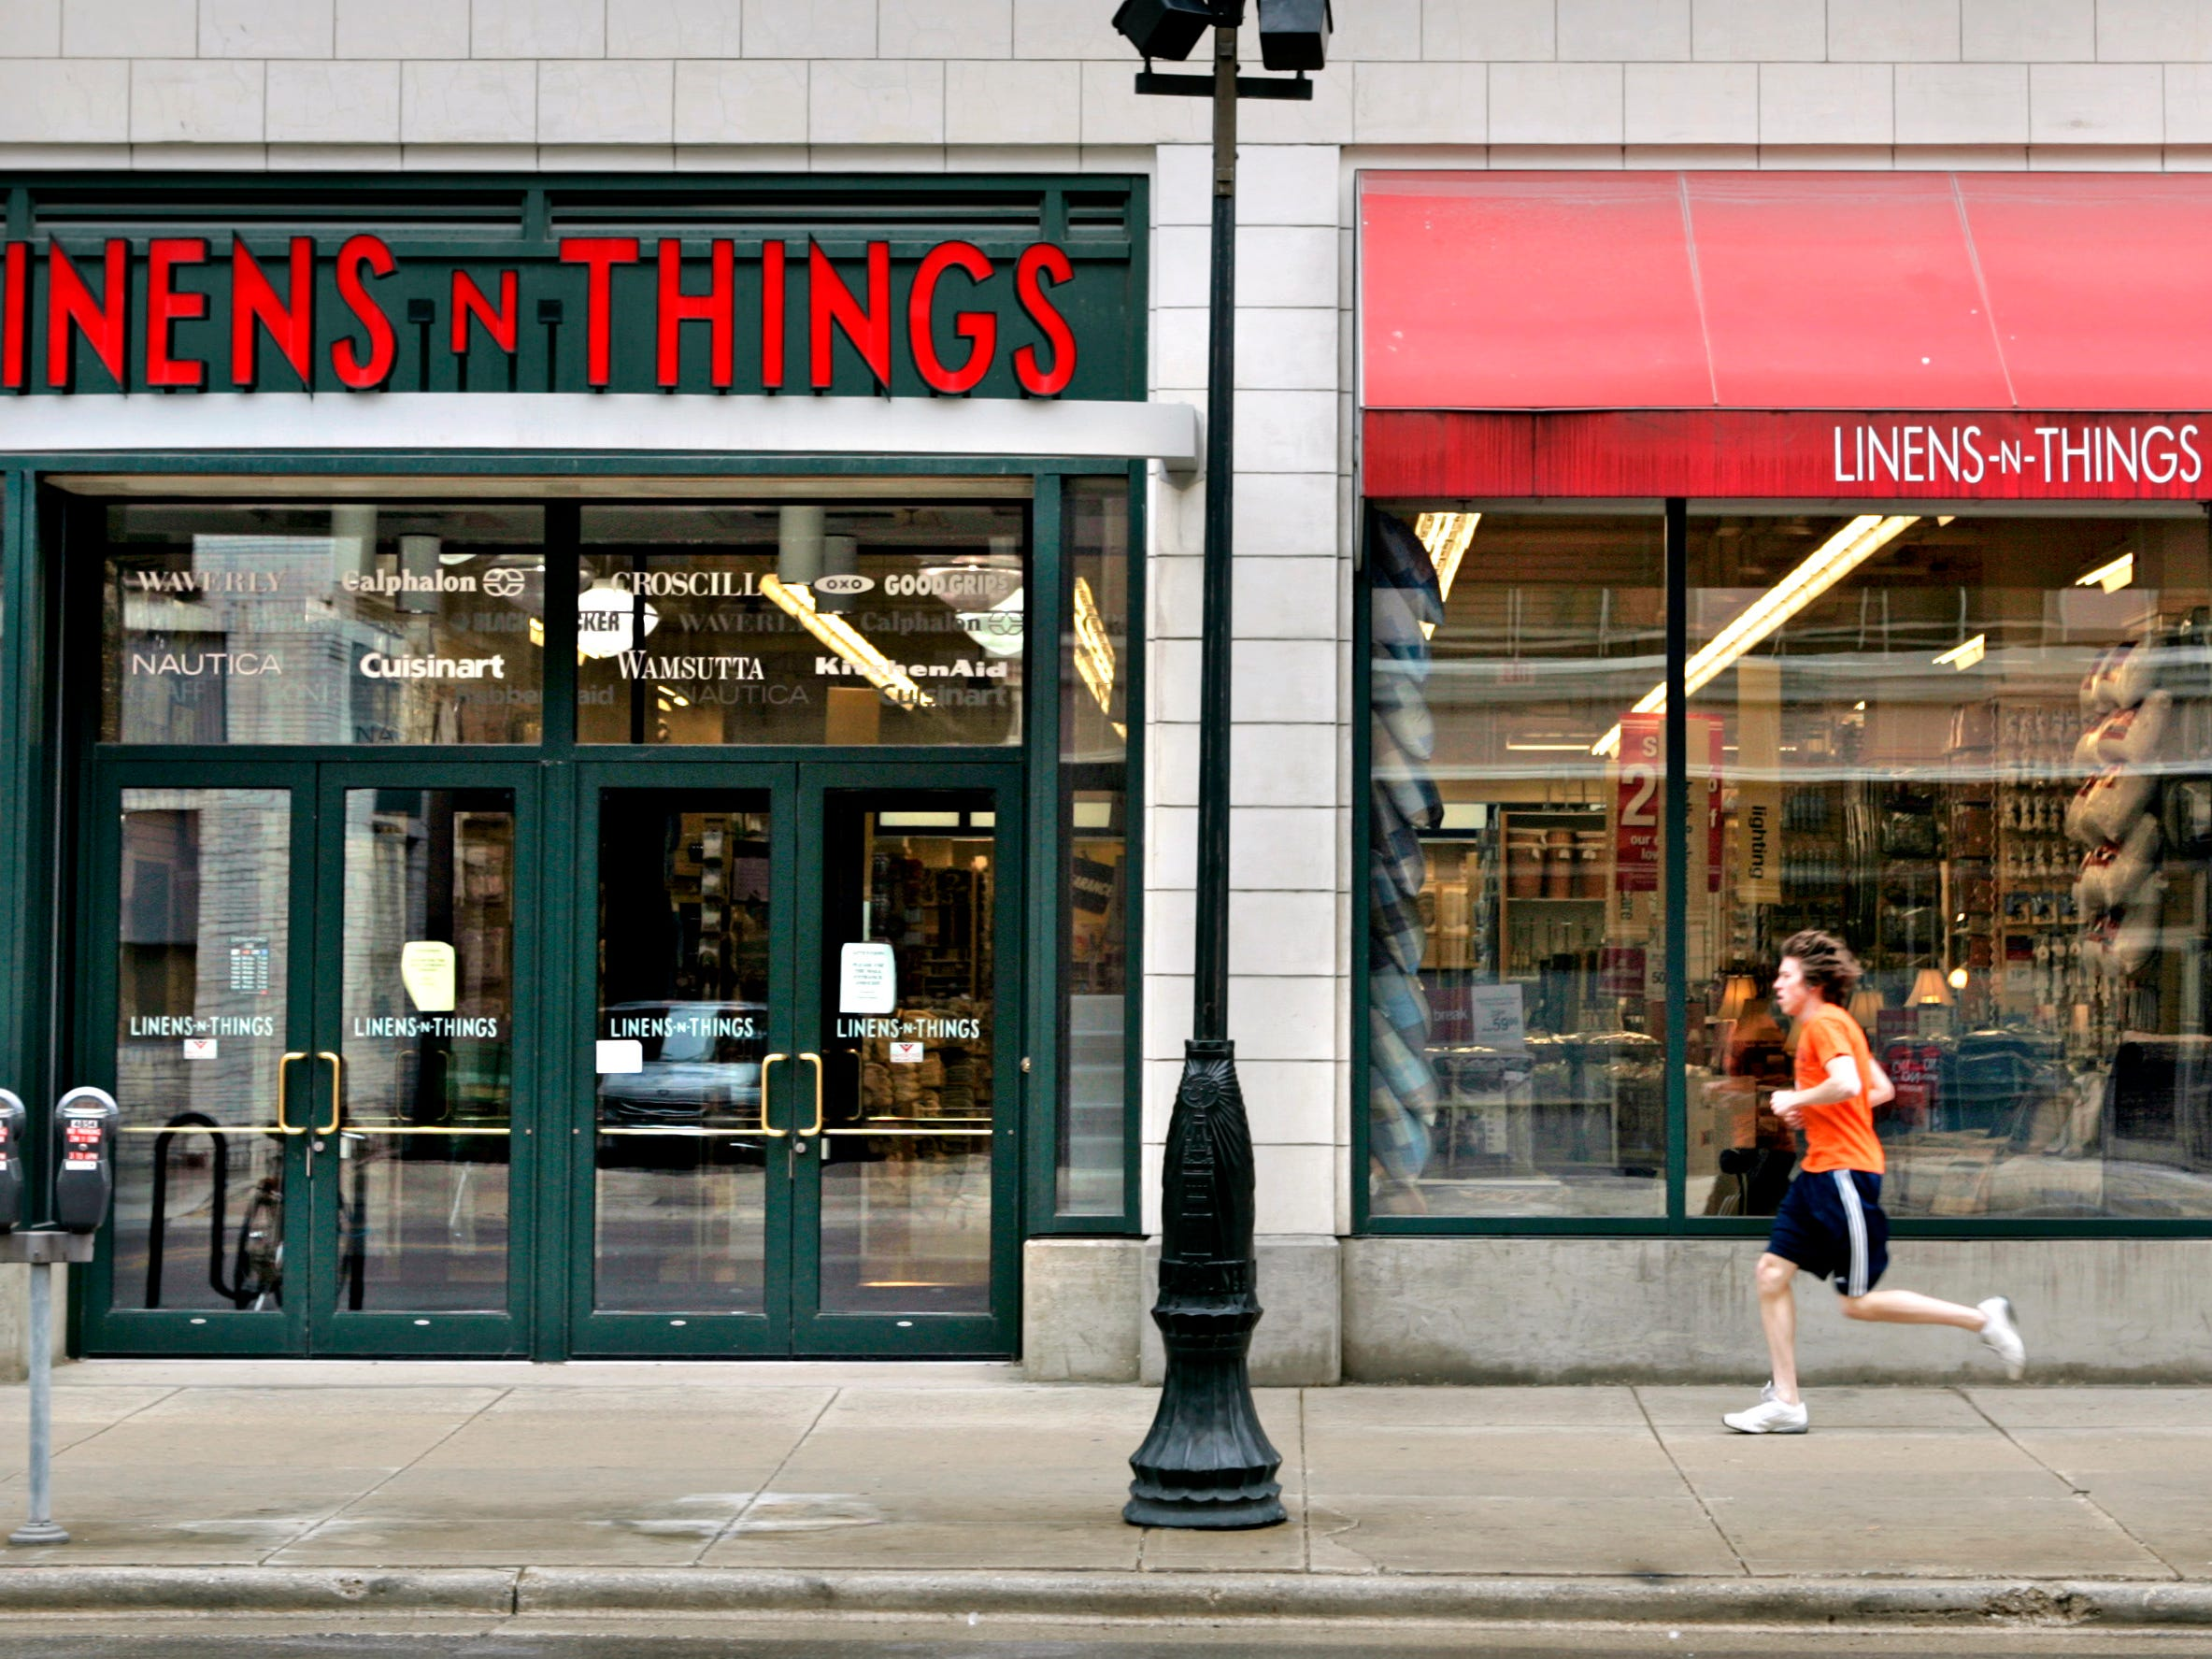 A runner moves past the exterior of the Grand Avenue Linens n Things store which is one of three stores being closed in Wisconsin, Friday, May 2, 2008. Linens has filed bankruptcy and is closing stores as a result. Rick Wood/RWOOD@JOURNALSENTINEL.COM